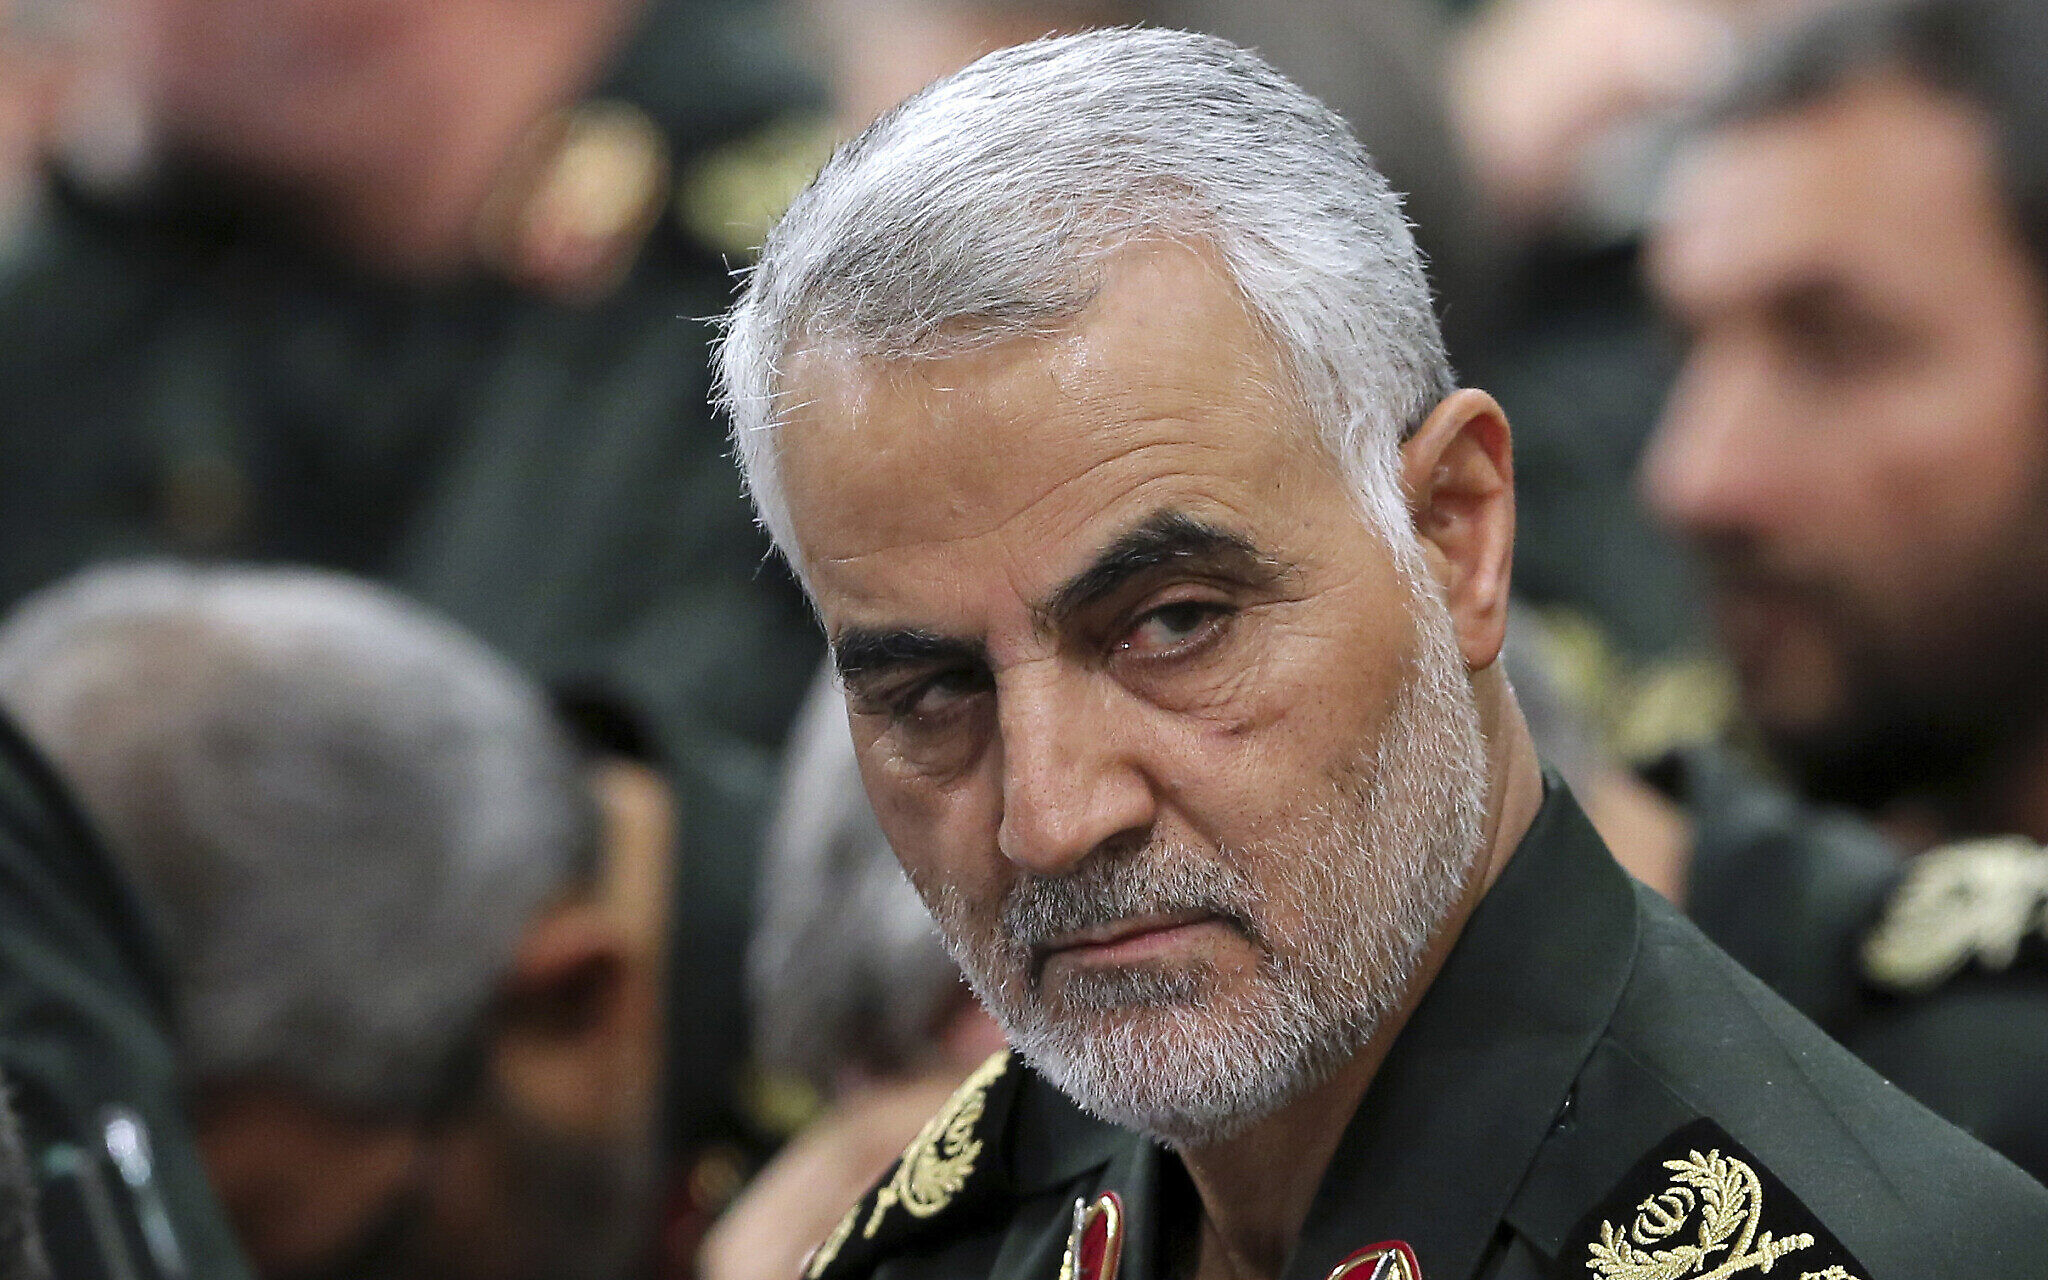 U.S. Killing Of Iran's Top Gen. Soleimani 'Was Unlawful,' U.N. Expert Says